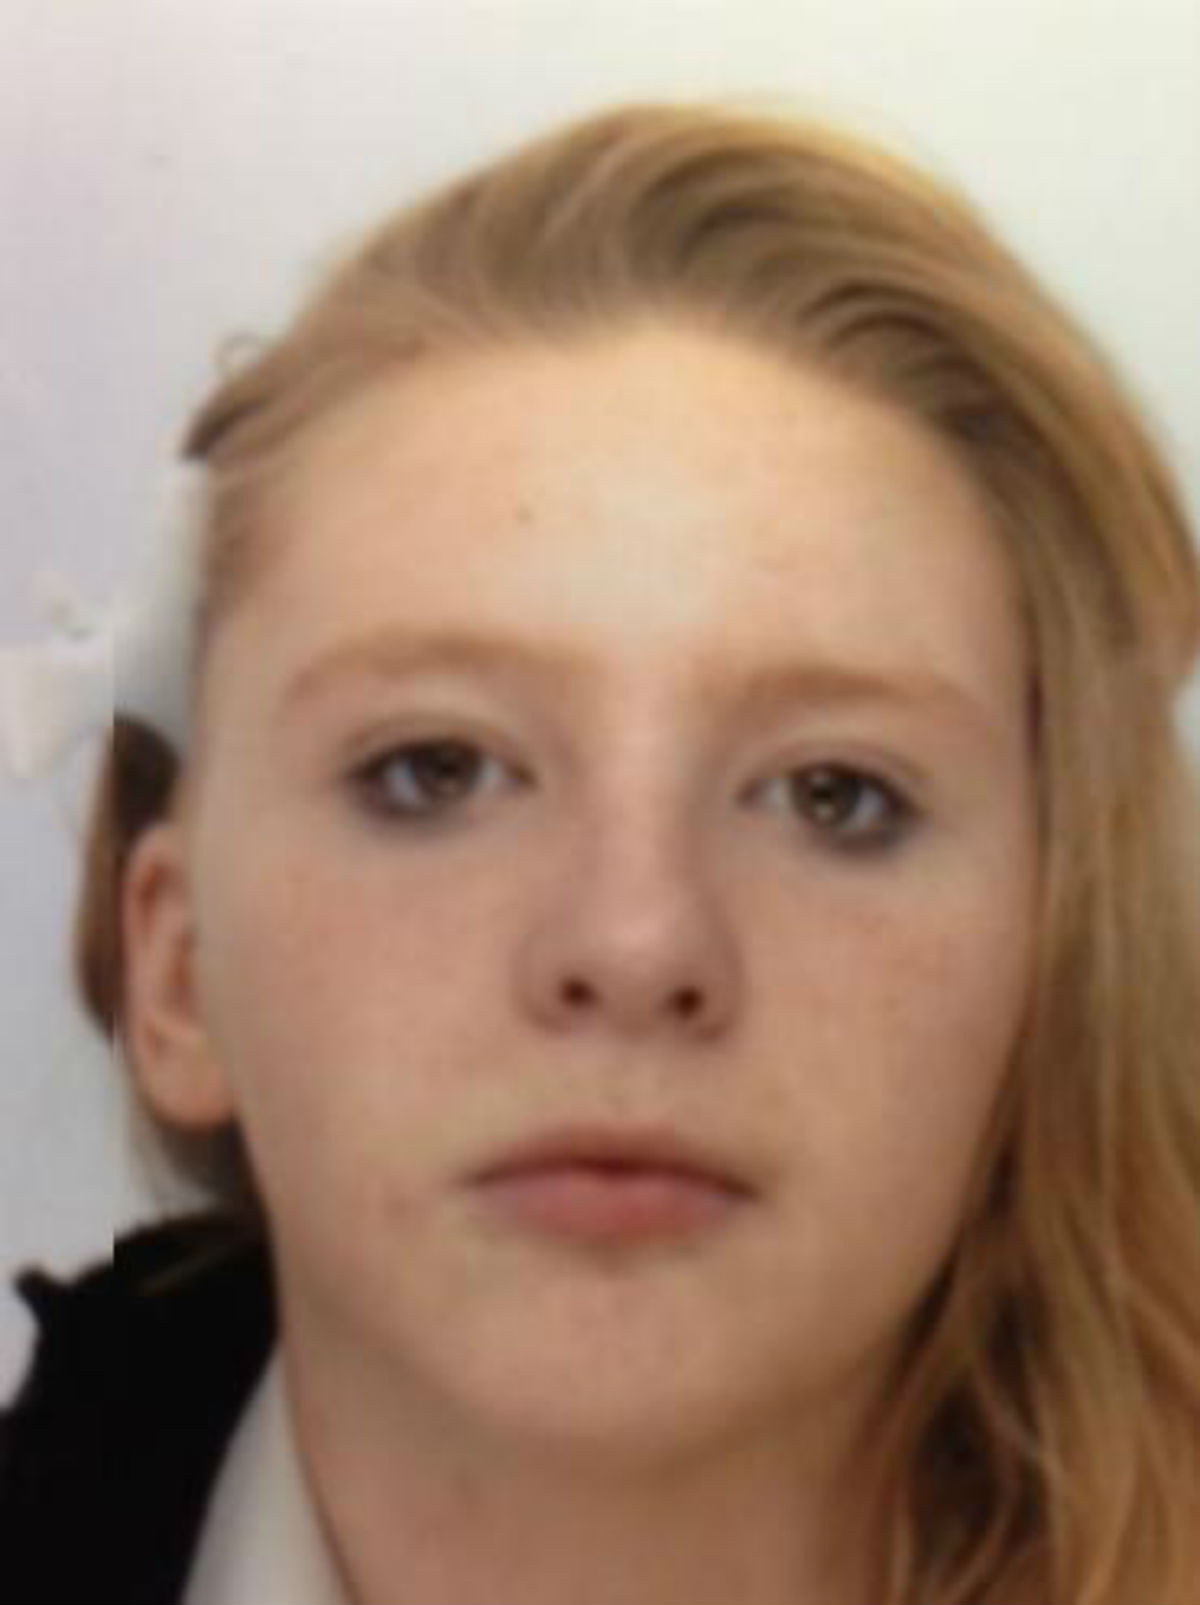 Missing teenager found